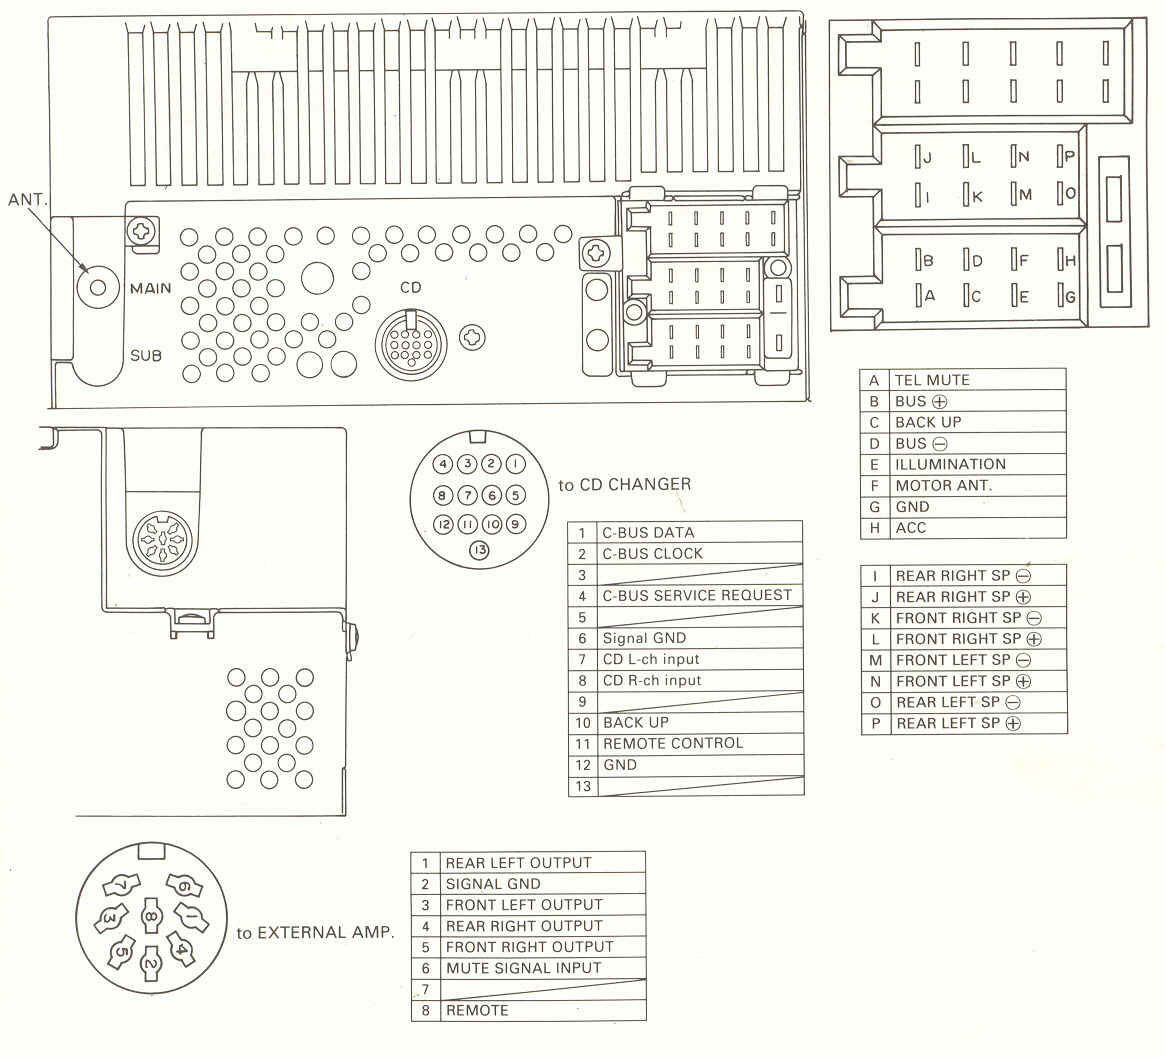 Saab 9000 Stereo Wiring Diagram on 1997 saab 900 amplifier wiring